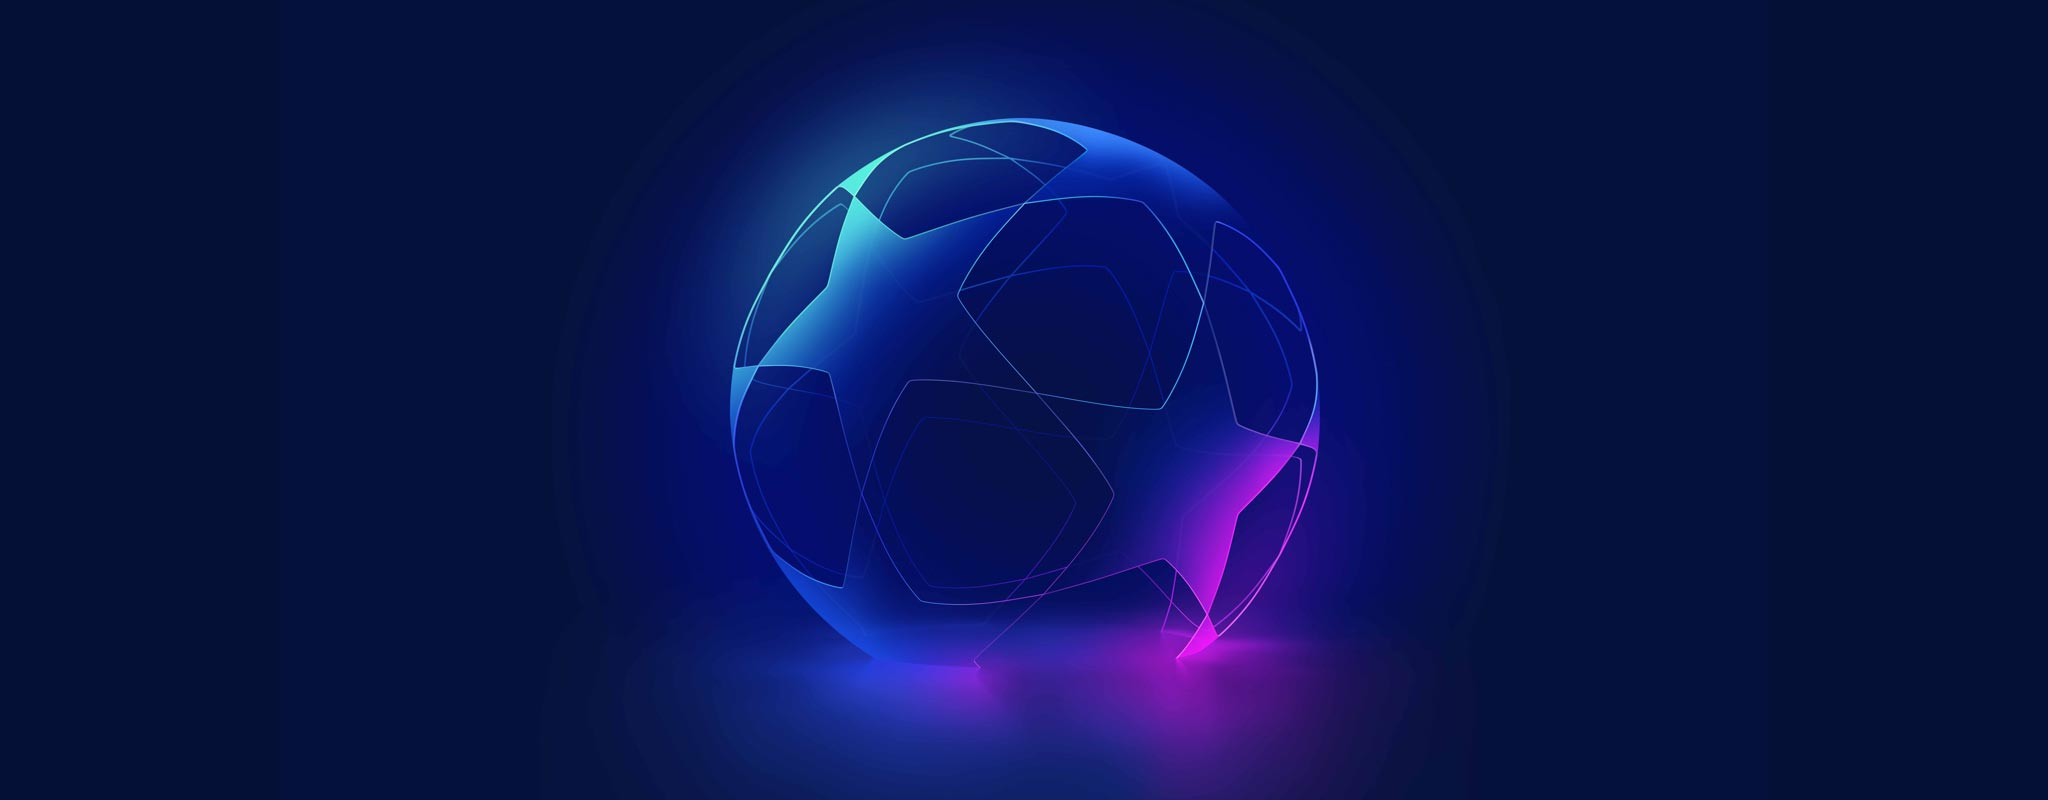 Download Uefa Champions League Wallpaper Full Hd